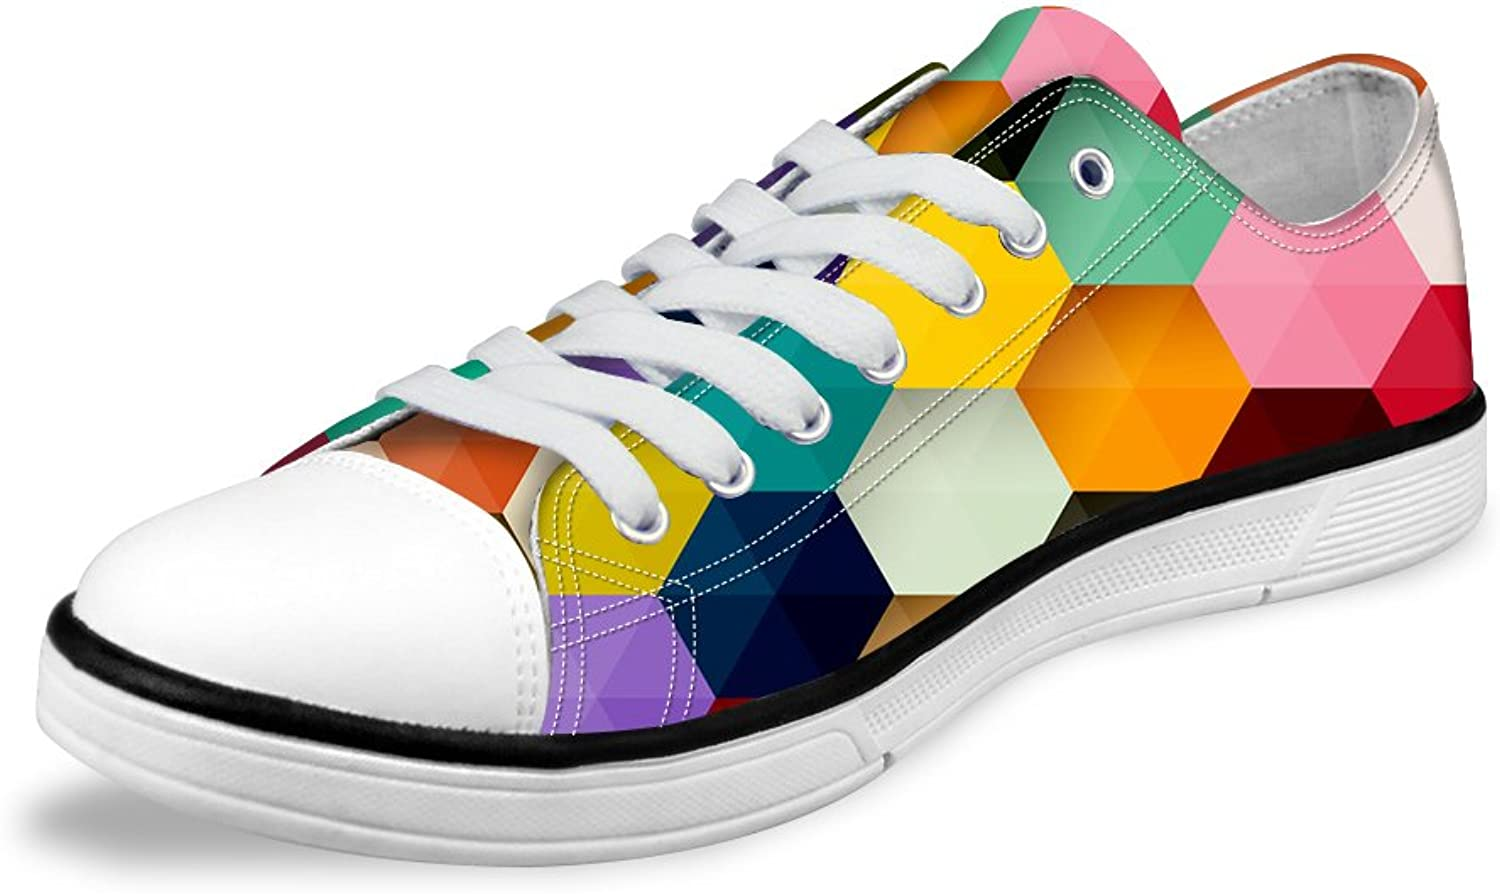 FOR U DESIGNS colorful Plaid Lightweight Lo-top Lace Up Casual Female Women shoes US 11